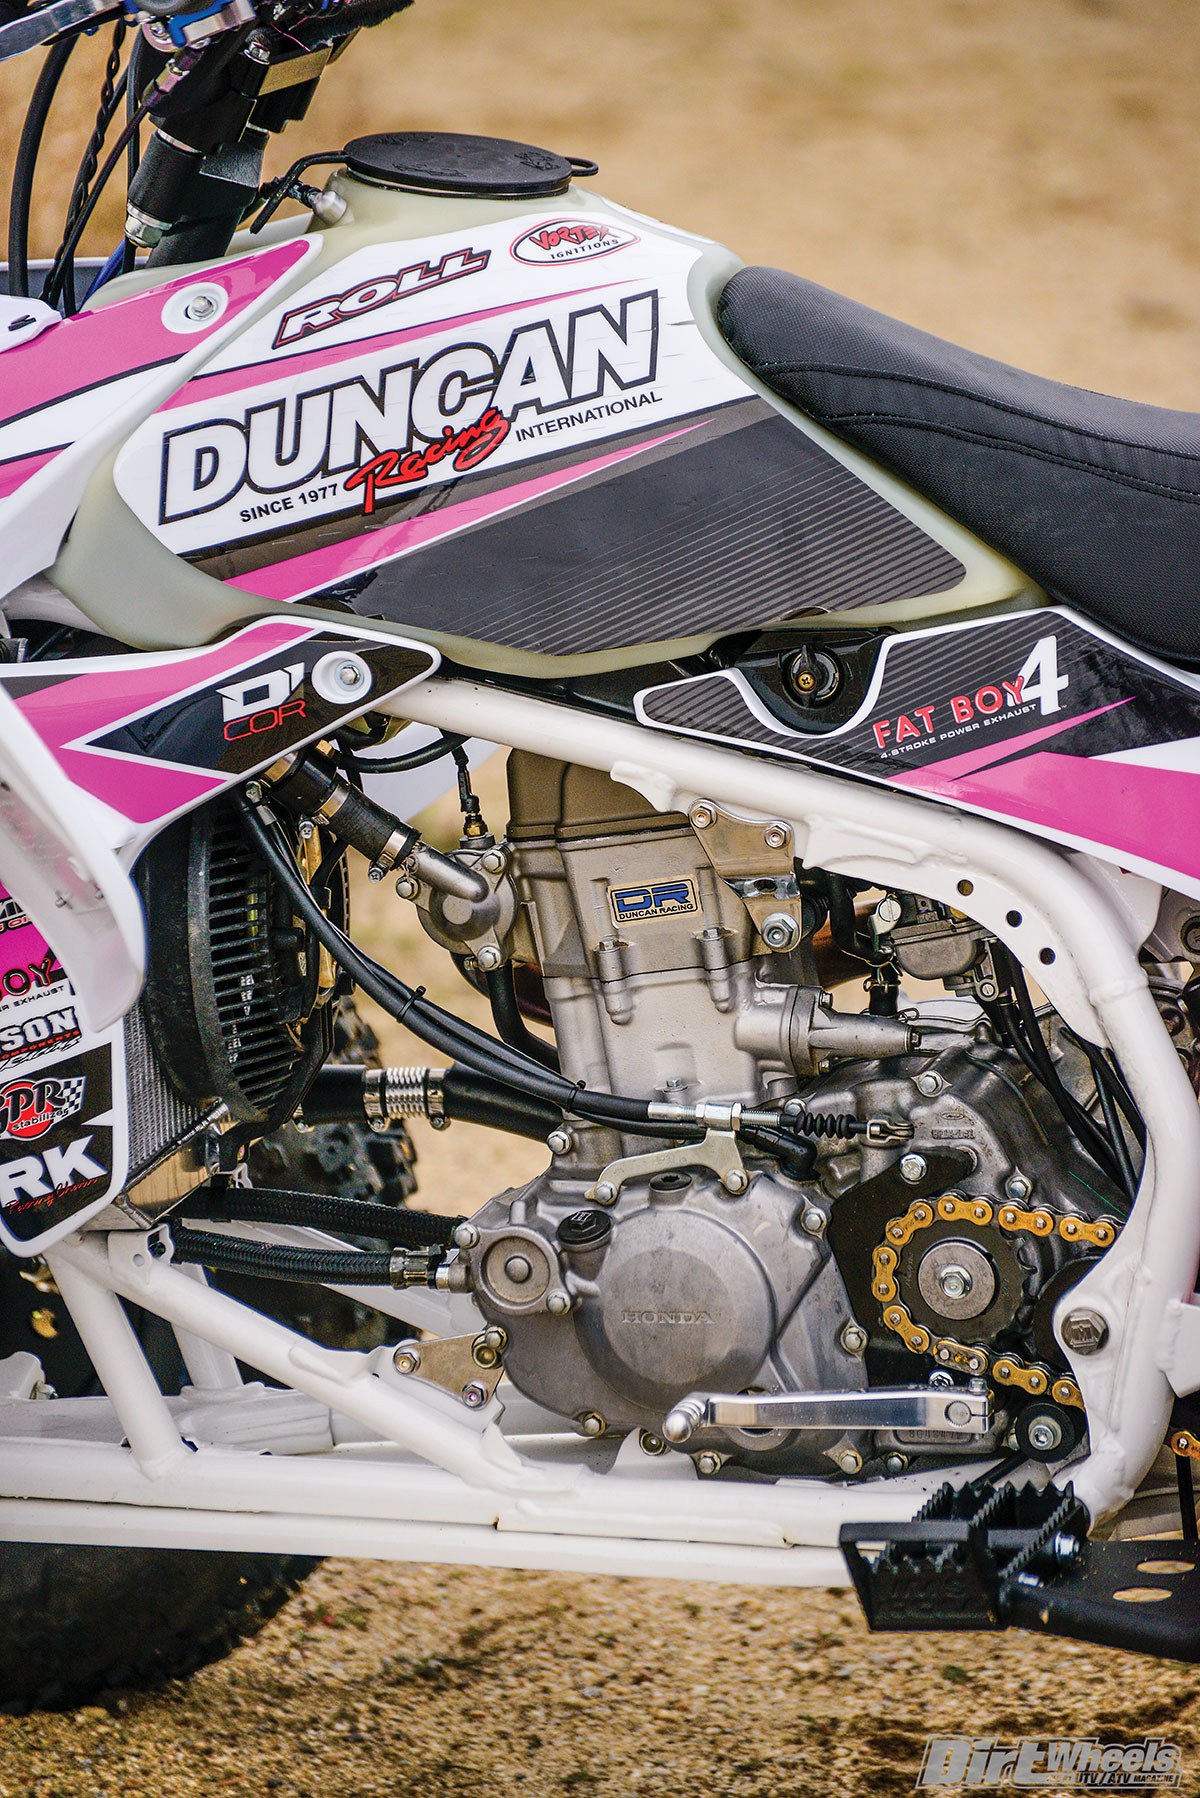 Duncan Racing built this engine up to 470cc and did extensive work to the cylinder head. BITD doesn't have a production rule, so going with a big-bore setup is legal.